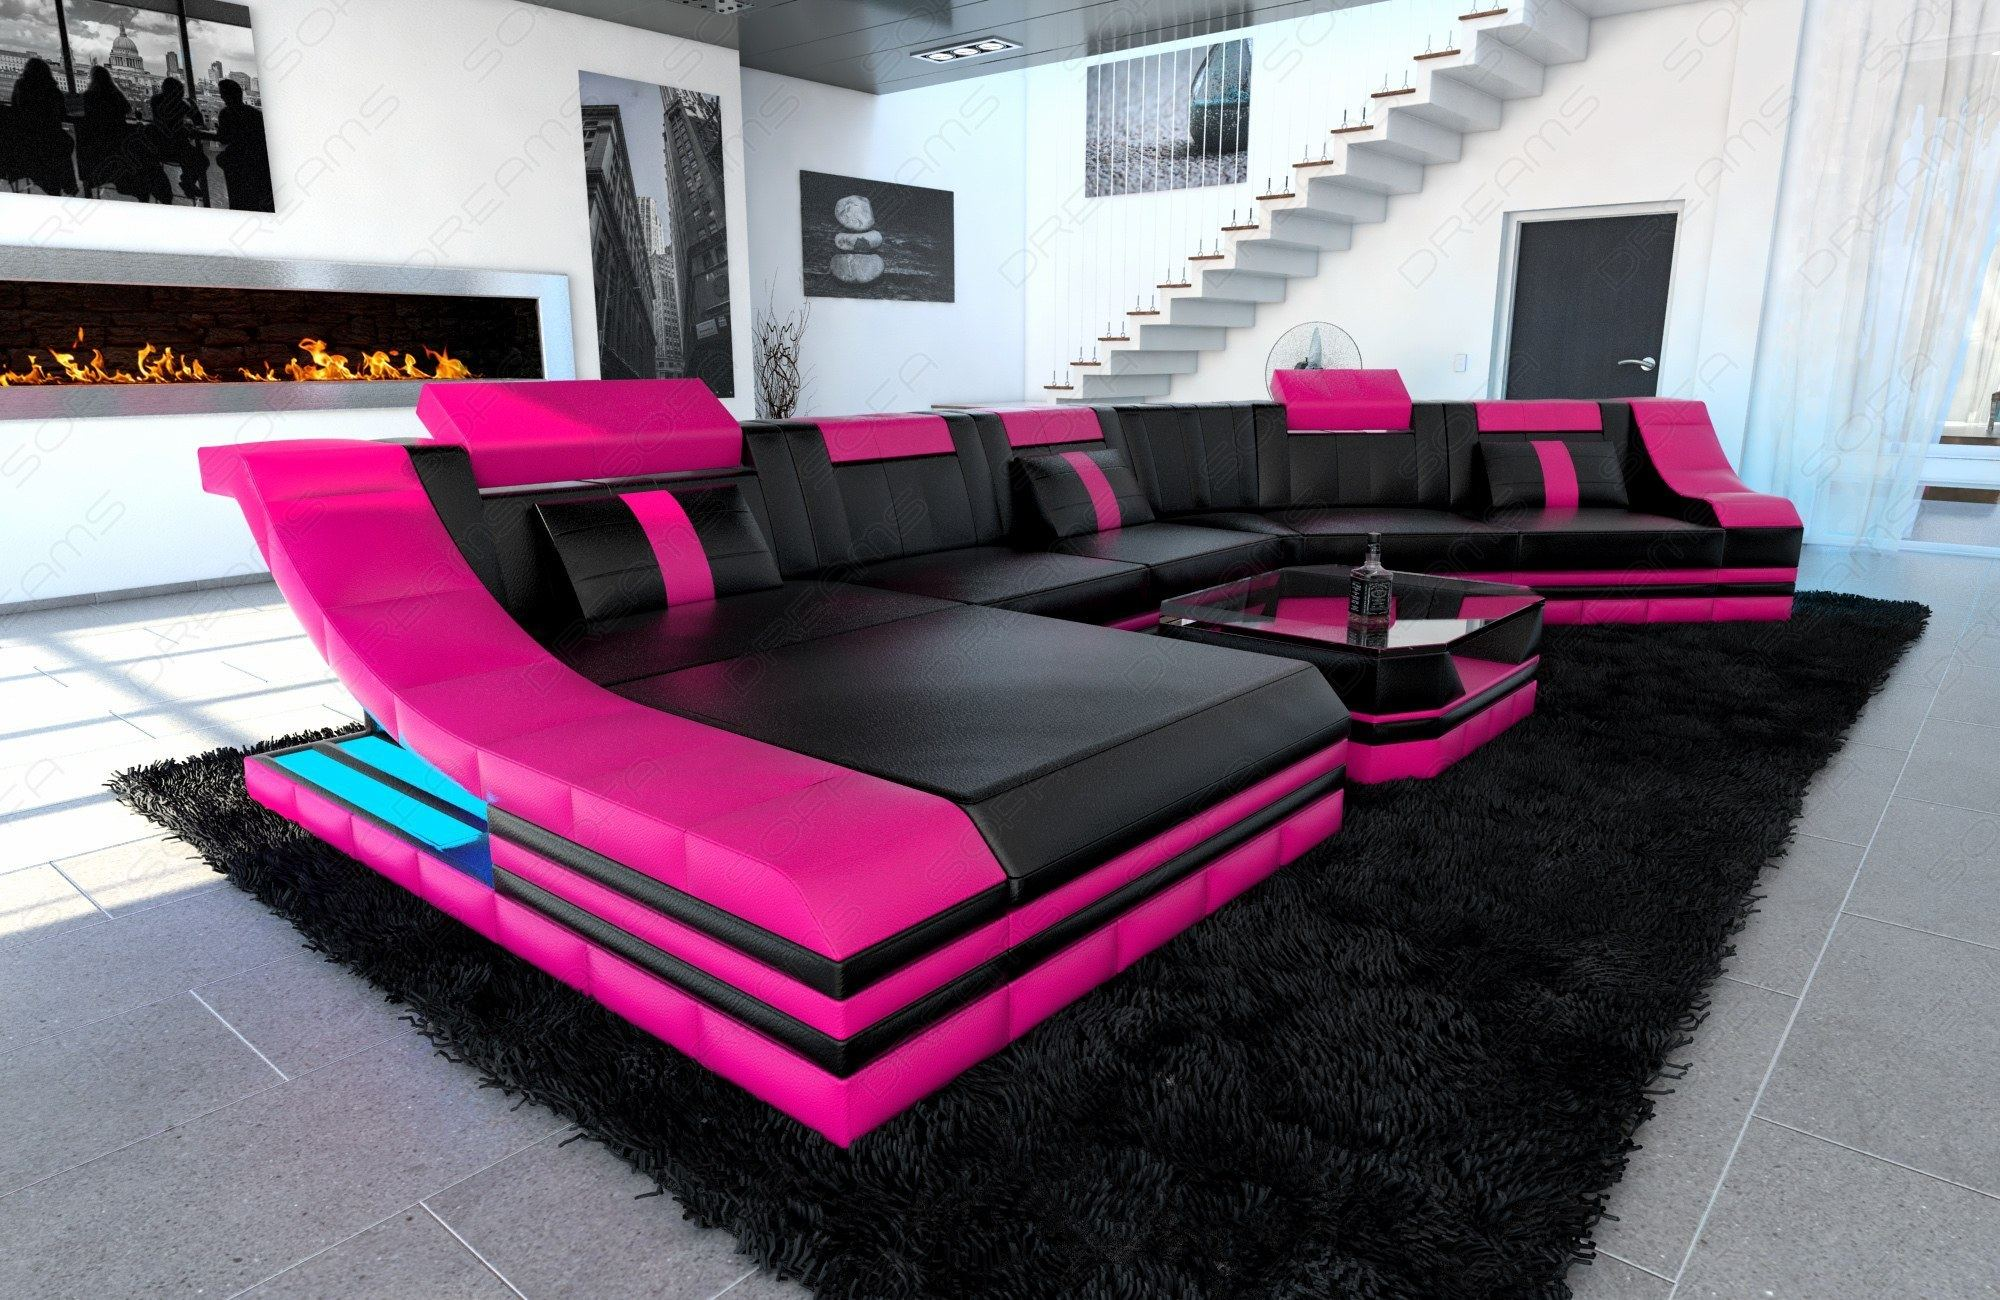 XXL Luxury Sectional Sofa TURINO CL with LED Lights black pink